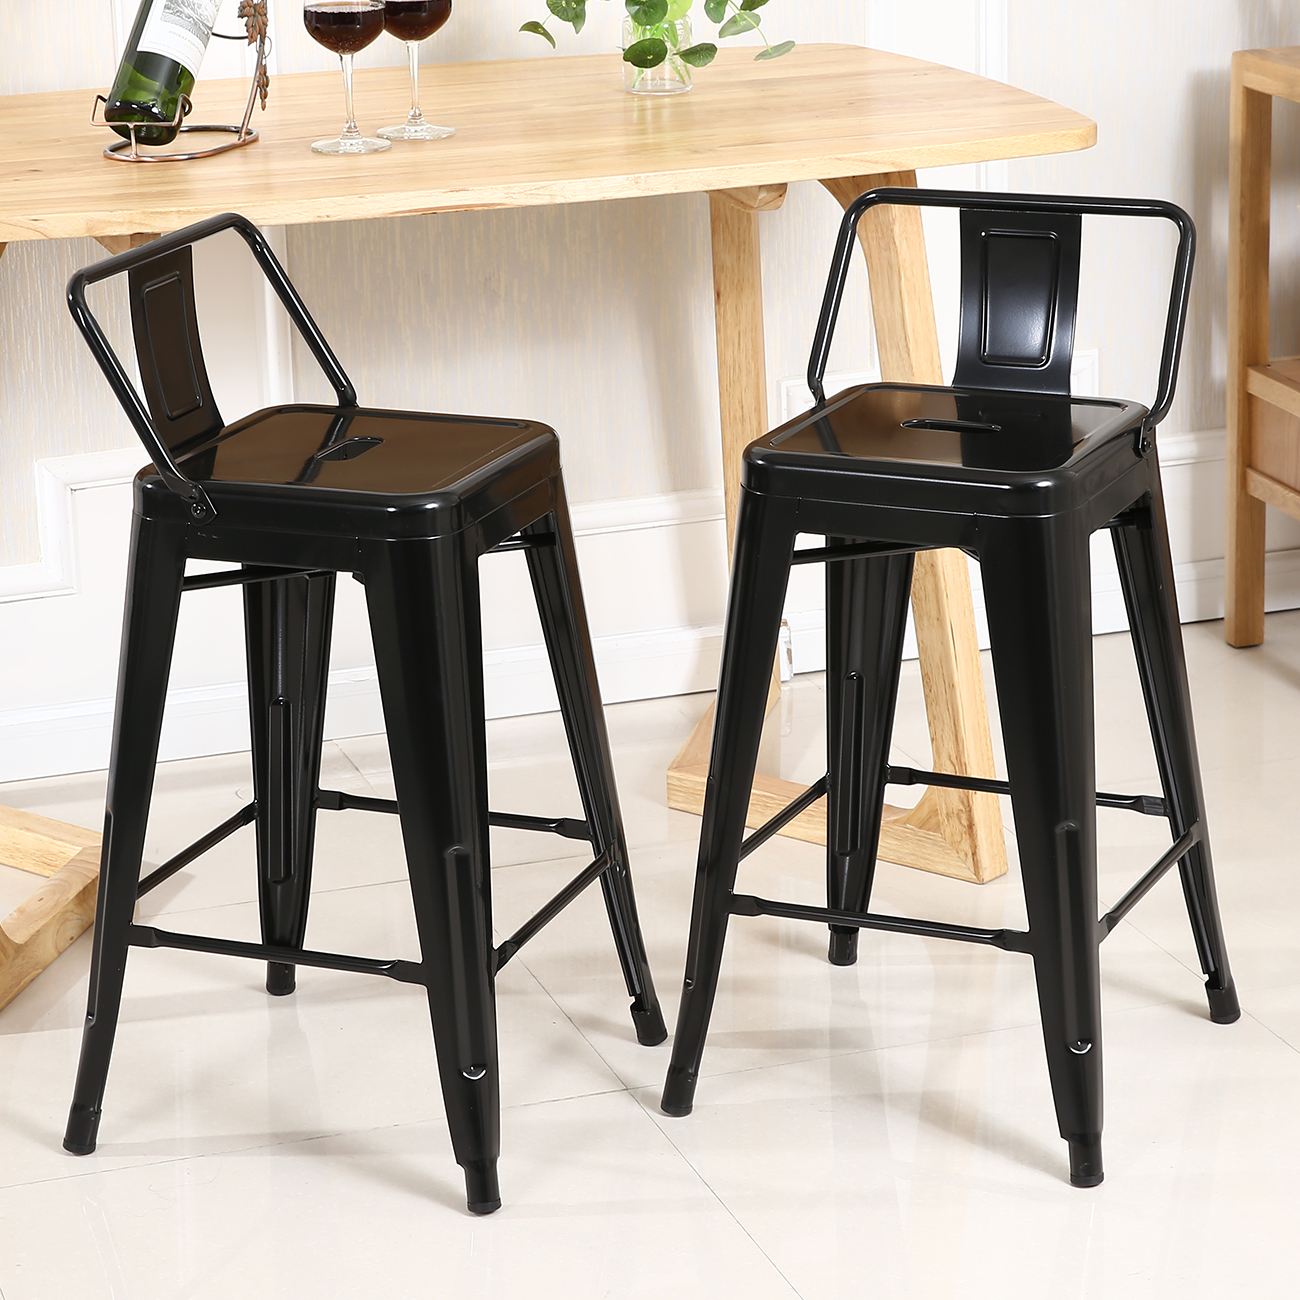 Low Back 24quot inch Height Chair Stool Counter Height Stools  : 014 hg 52424 bk 12 from www.ebay.com size 1300 x 1300 jpeg 954kB